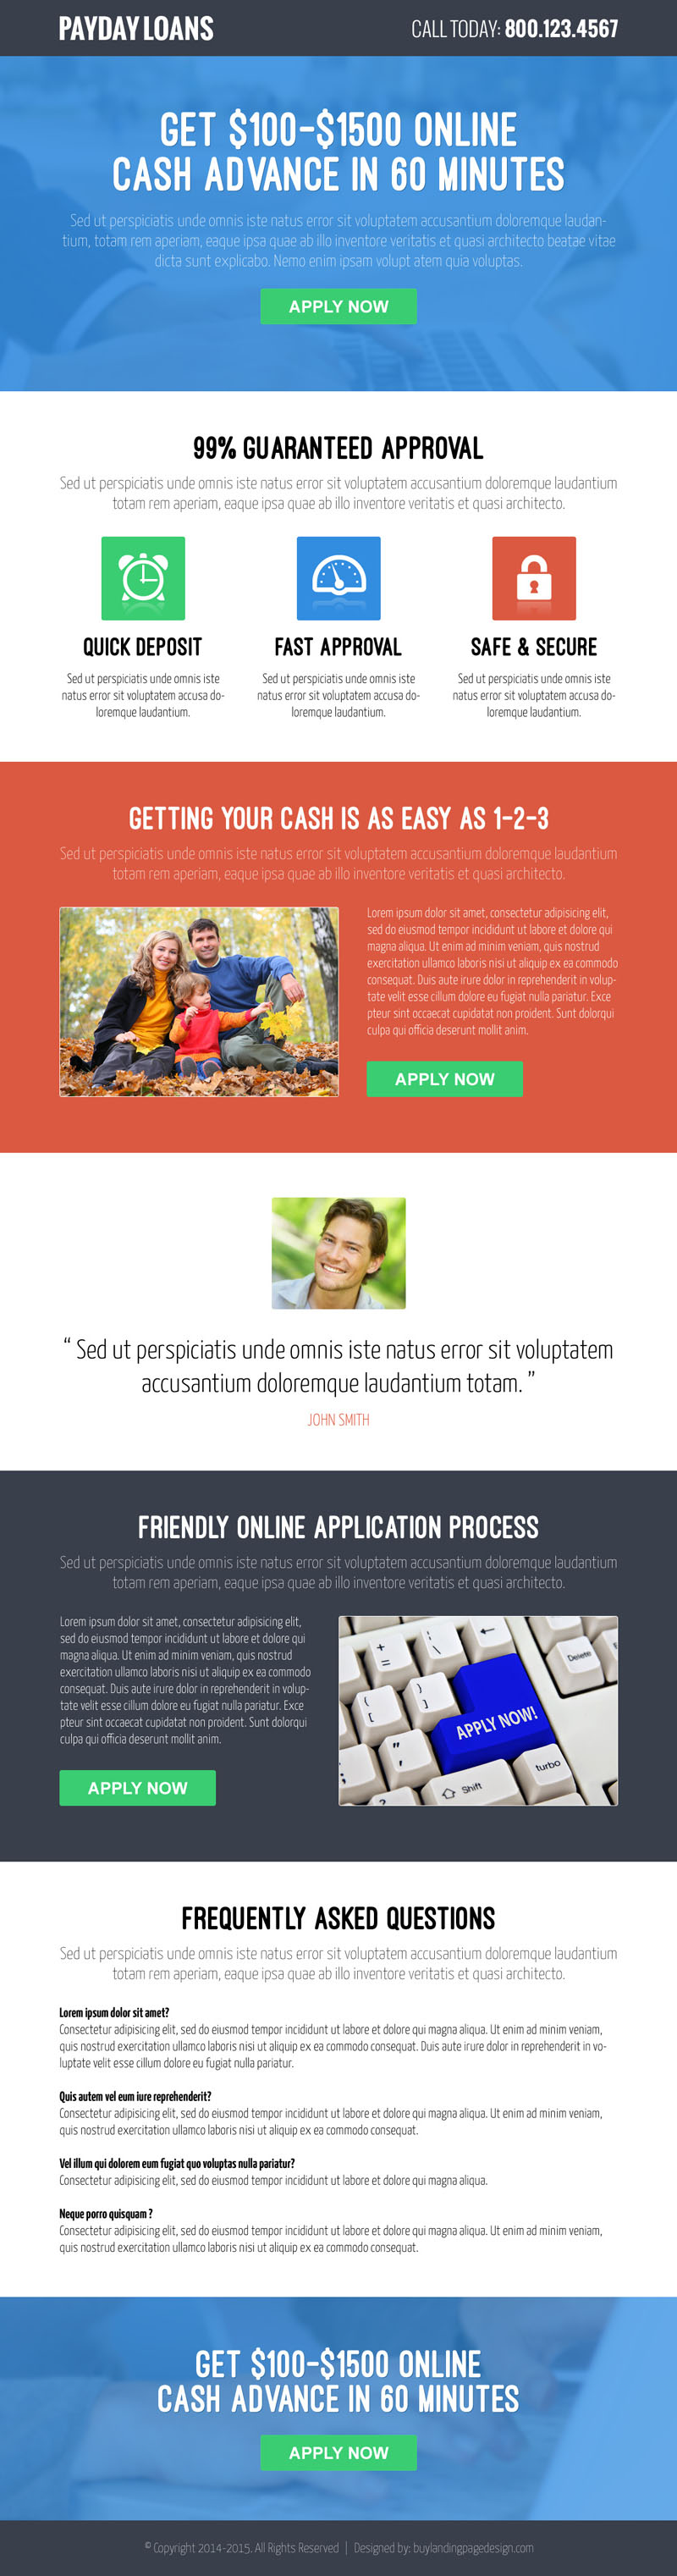 online-cash-advance-call-to-action-payday-loan-landing-page-design-templates-020